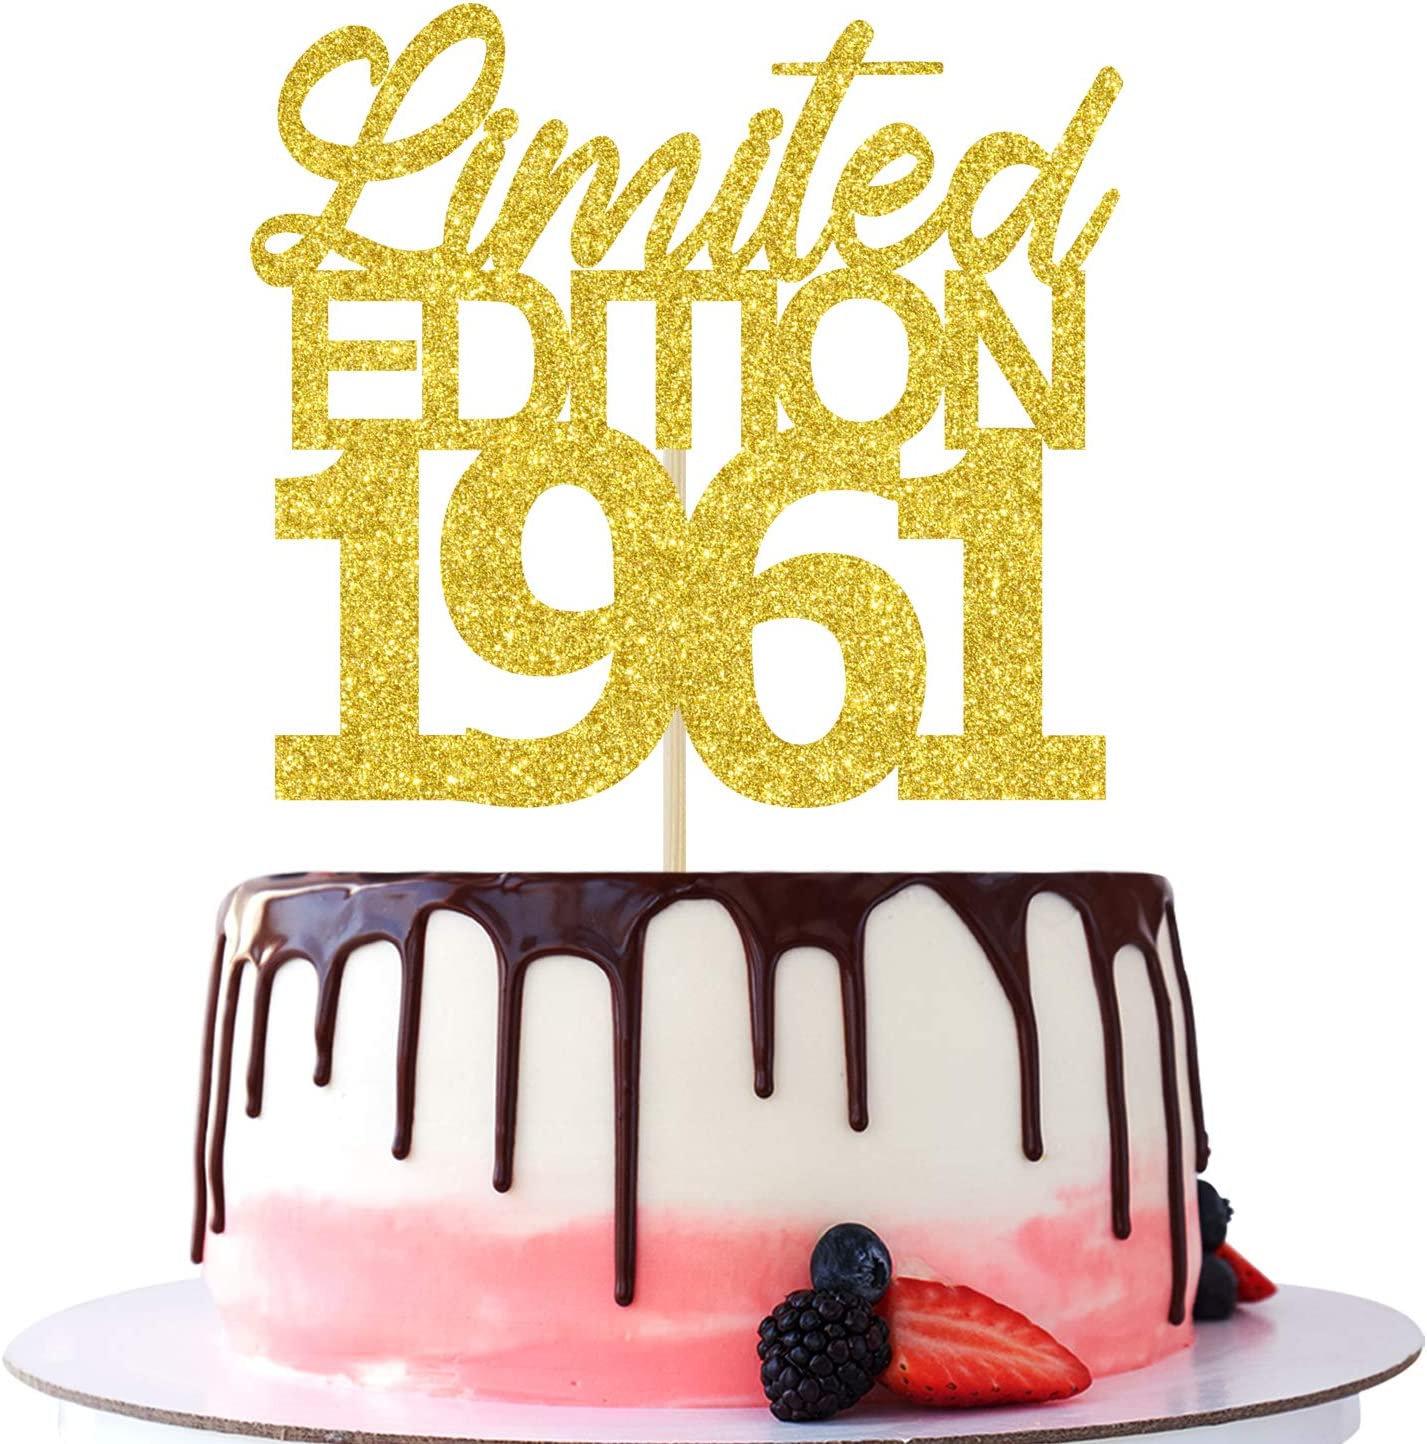 Limited Edition 1961 Cake Topper, 60 and Fabulous - Hello 60, Cheers to 60 Years/ 60th Birthday /Wedding /Anniversary Party Decorations Gold Glitter